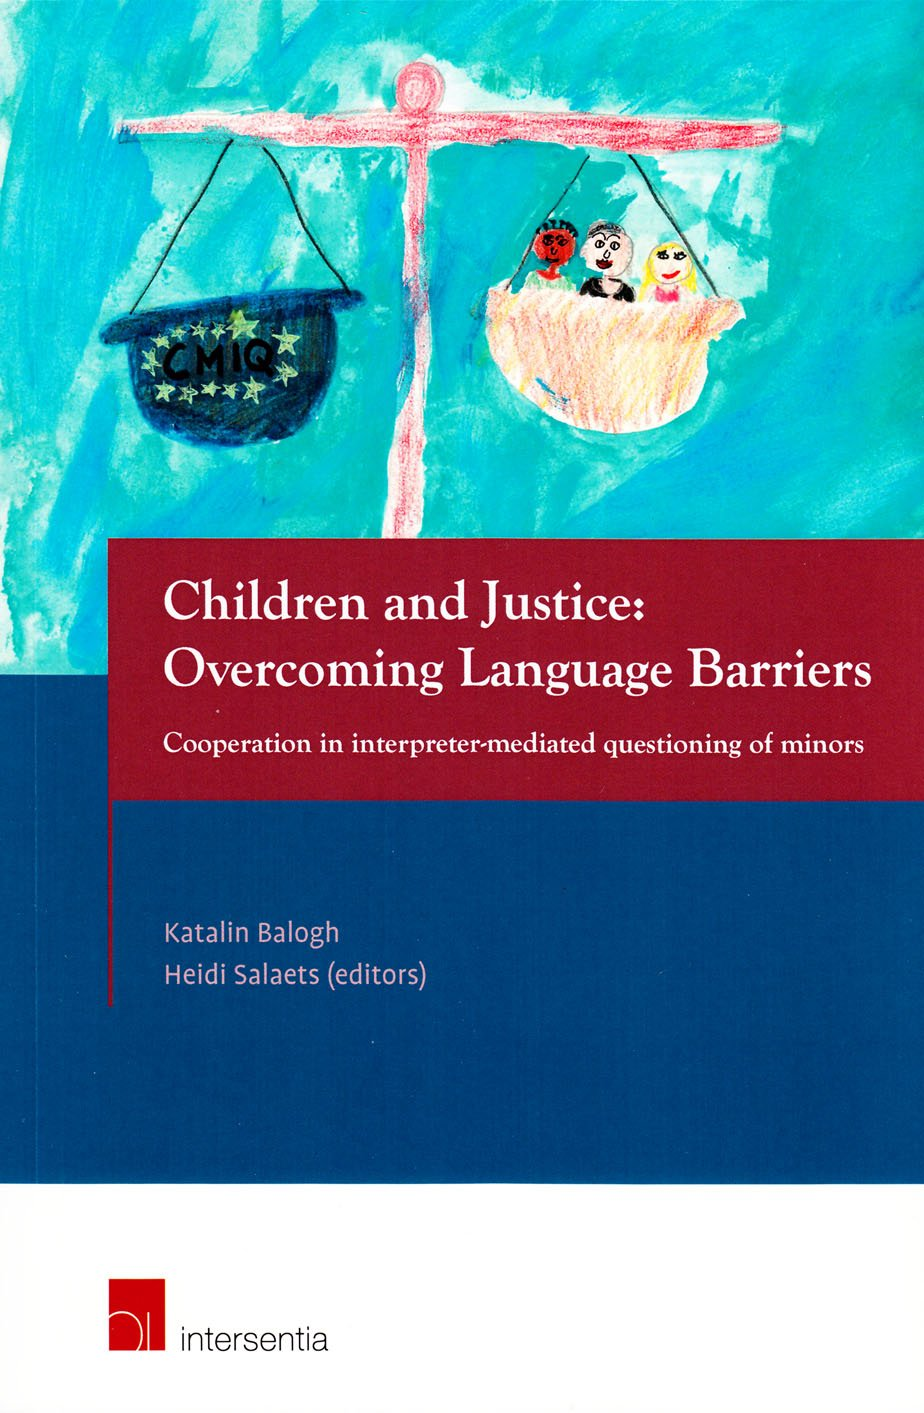 Children and Justice: Overcoming Language Barriers: Cooperation in interpreter-mediated questioning of minors by Intersentia